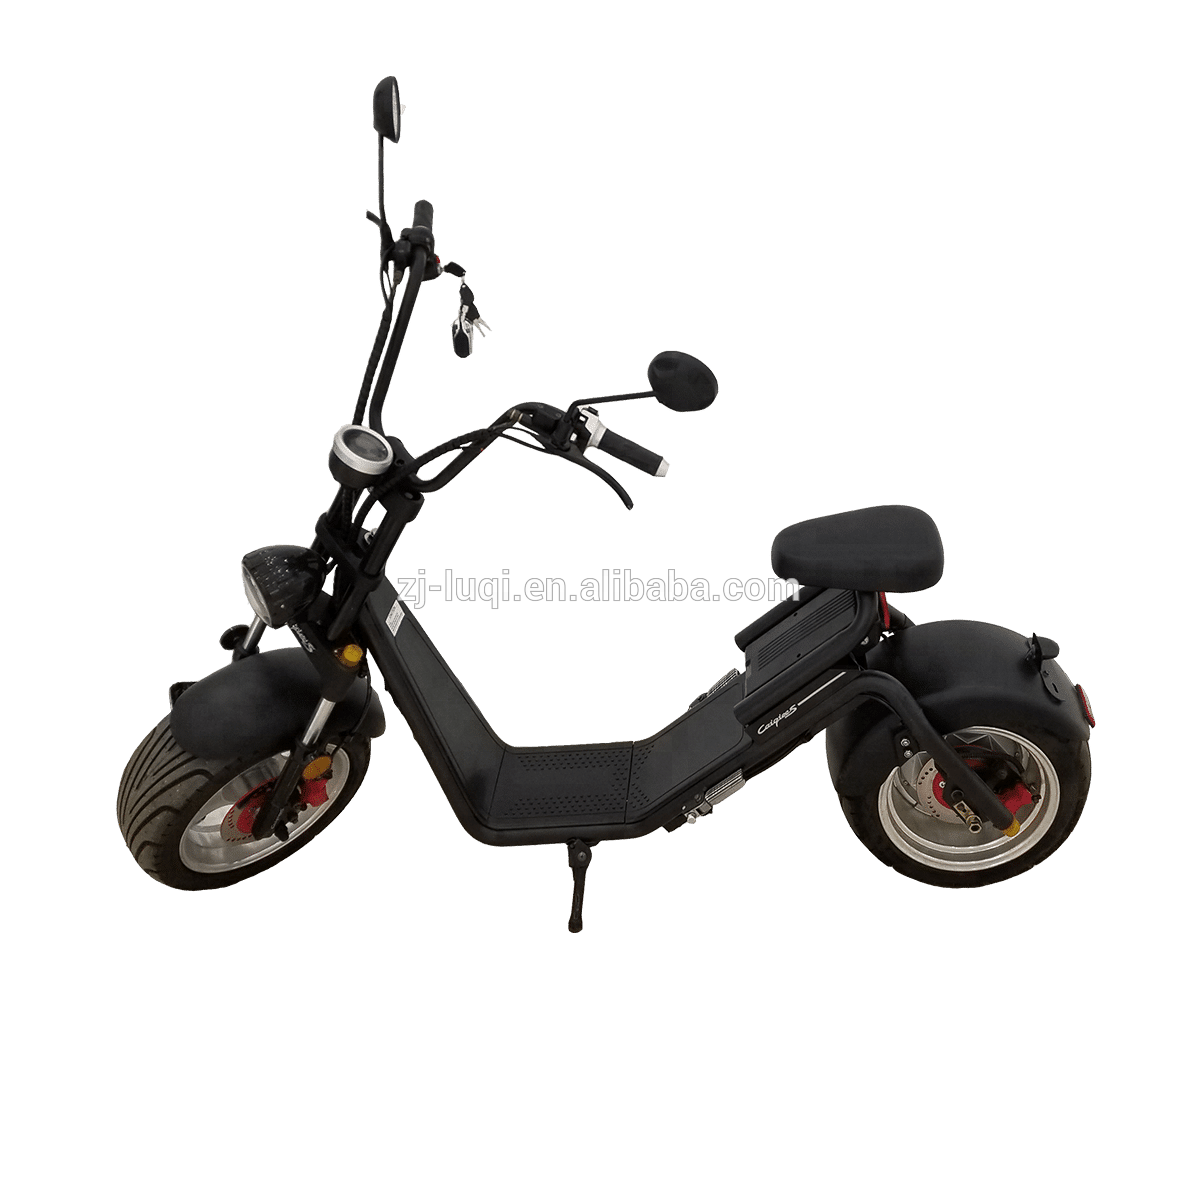 E-mark/COC/EEC Hot Sale 1200W Electric Scooter 2 fat tire Citycoco, Customized